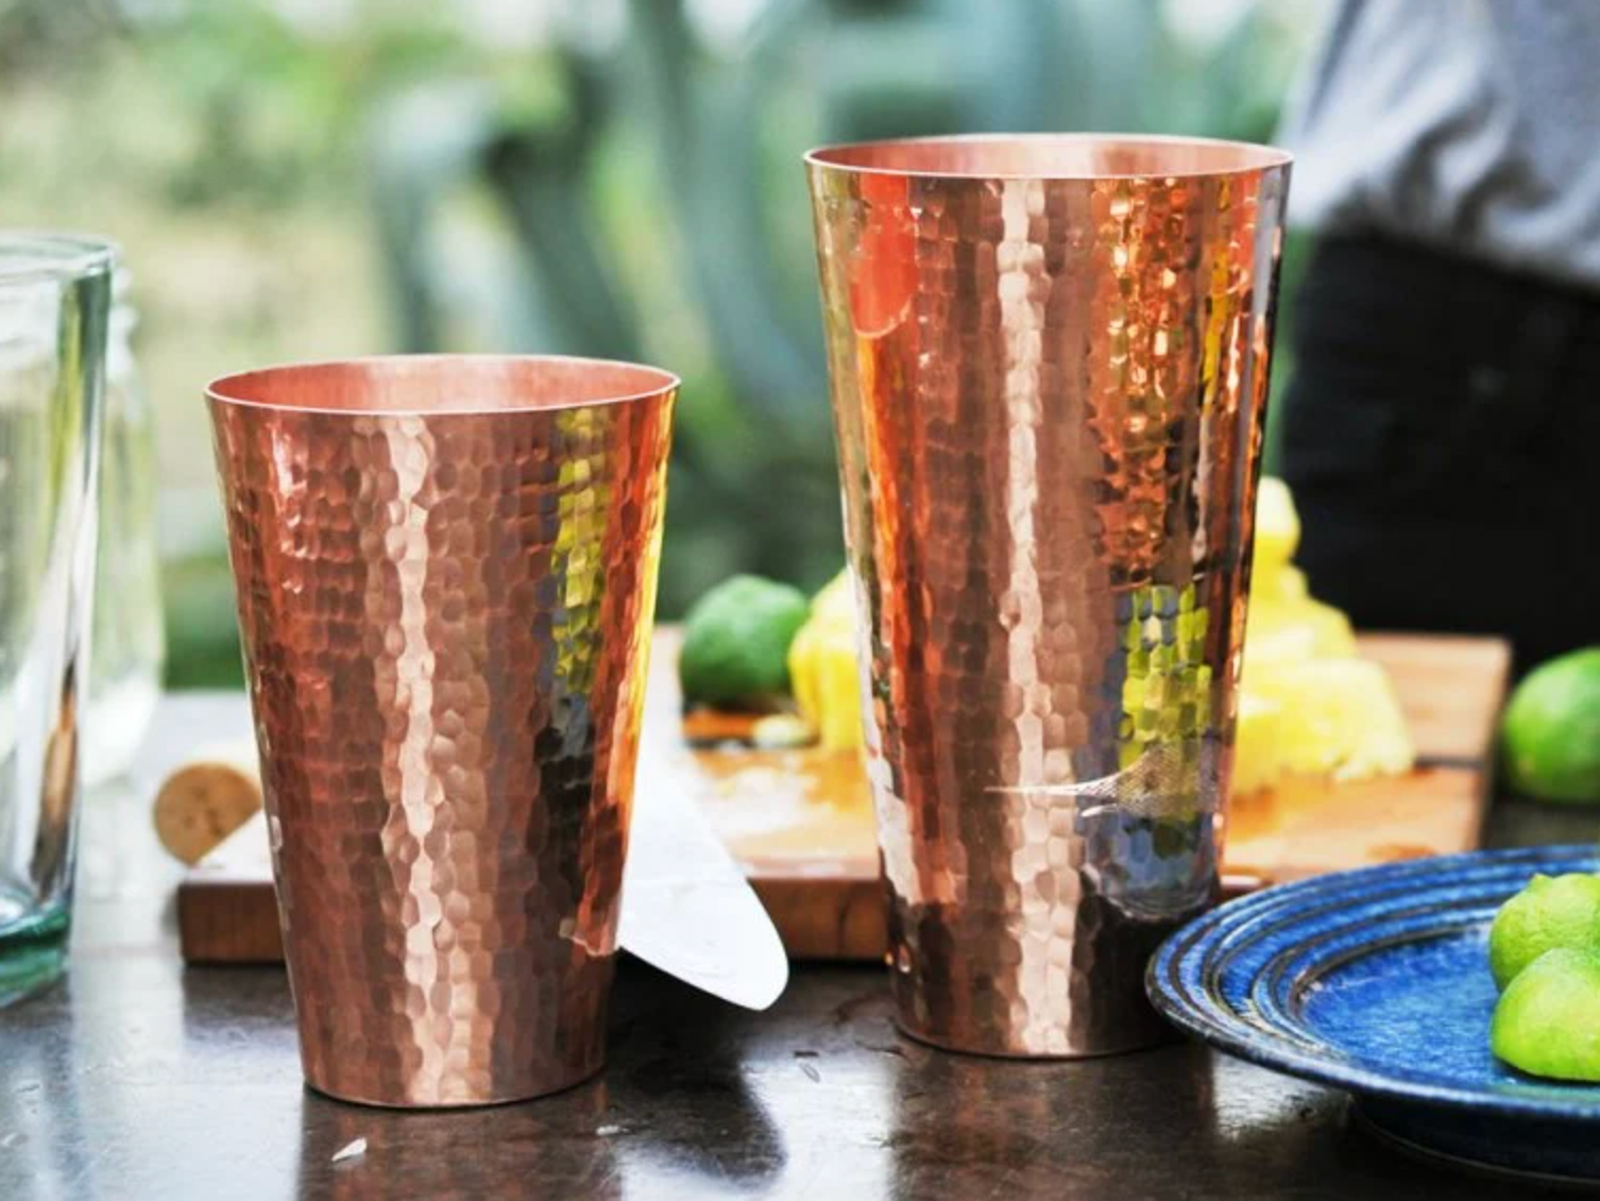 This gorgeous Boston shaker set includes one 30-ounce cup and one 18-ounce cup, made of 100 percent recycled copper. Hand-wash them right after you're done making drinks and be sure to dry well.$90 at thegrommet.com or $94 at food52.com